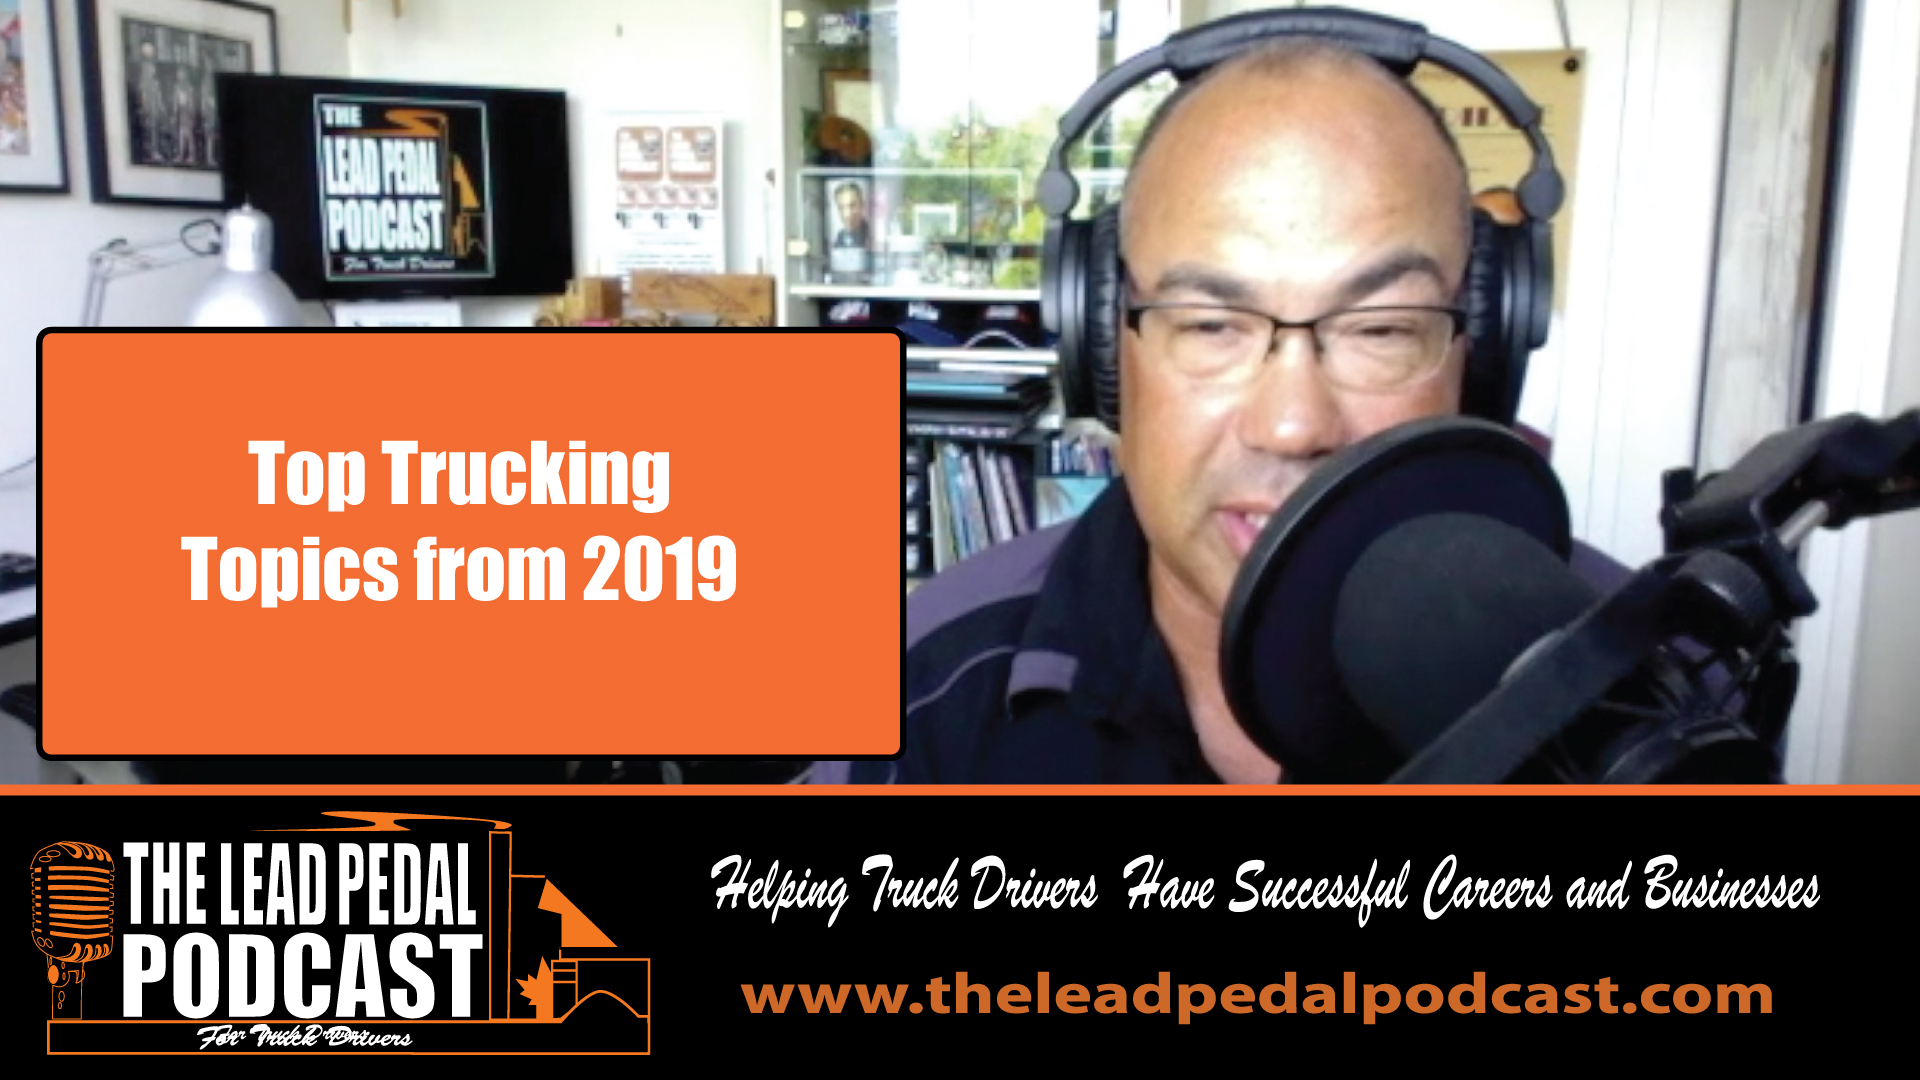 The Best of 2019 on the podcast